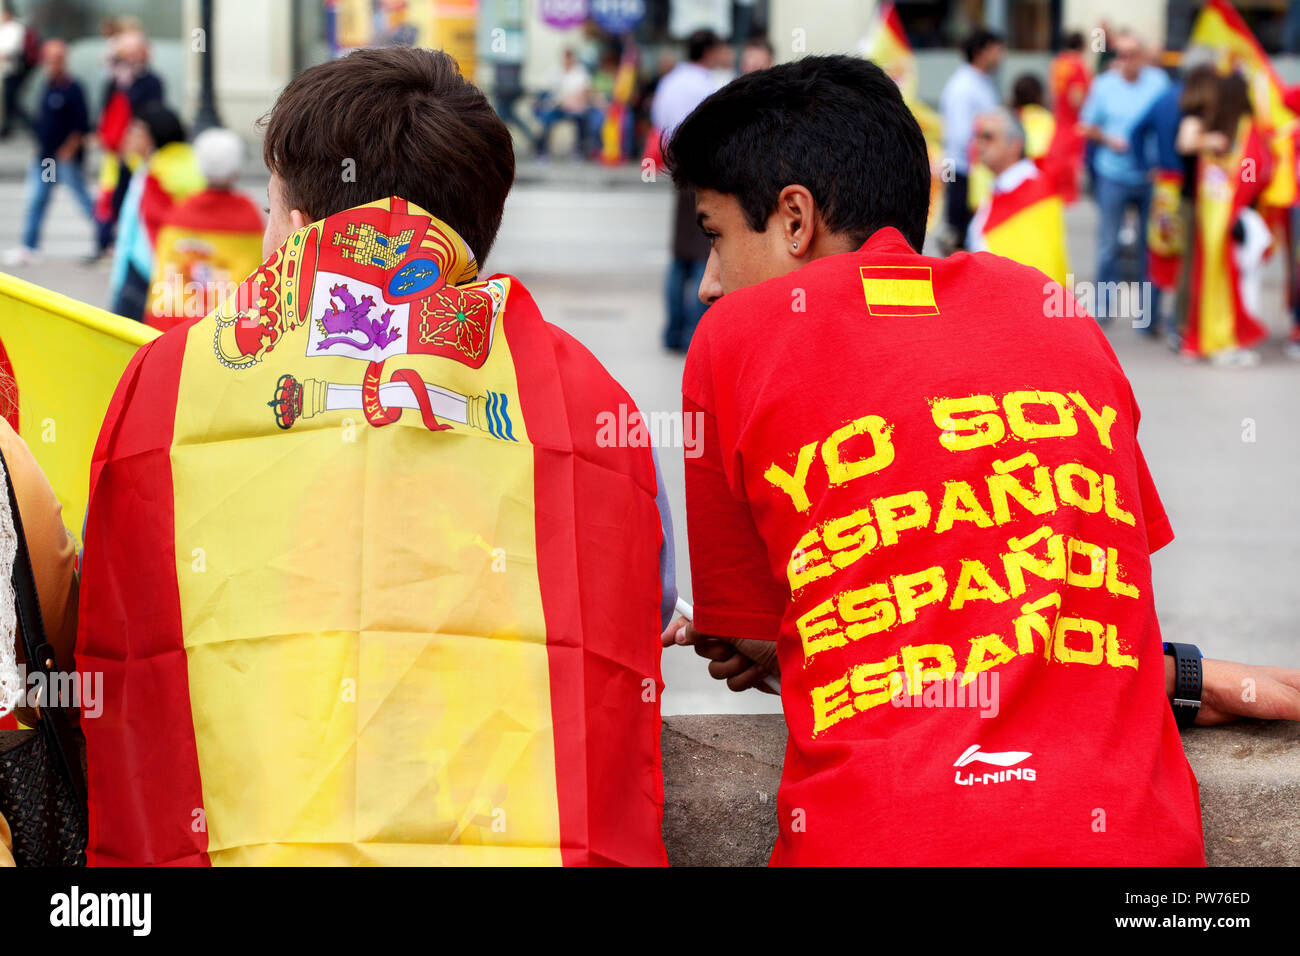 Two youths at a pro-Spain/ anti-Catalan independence rally, Barcelona, Spain. - Stock Image